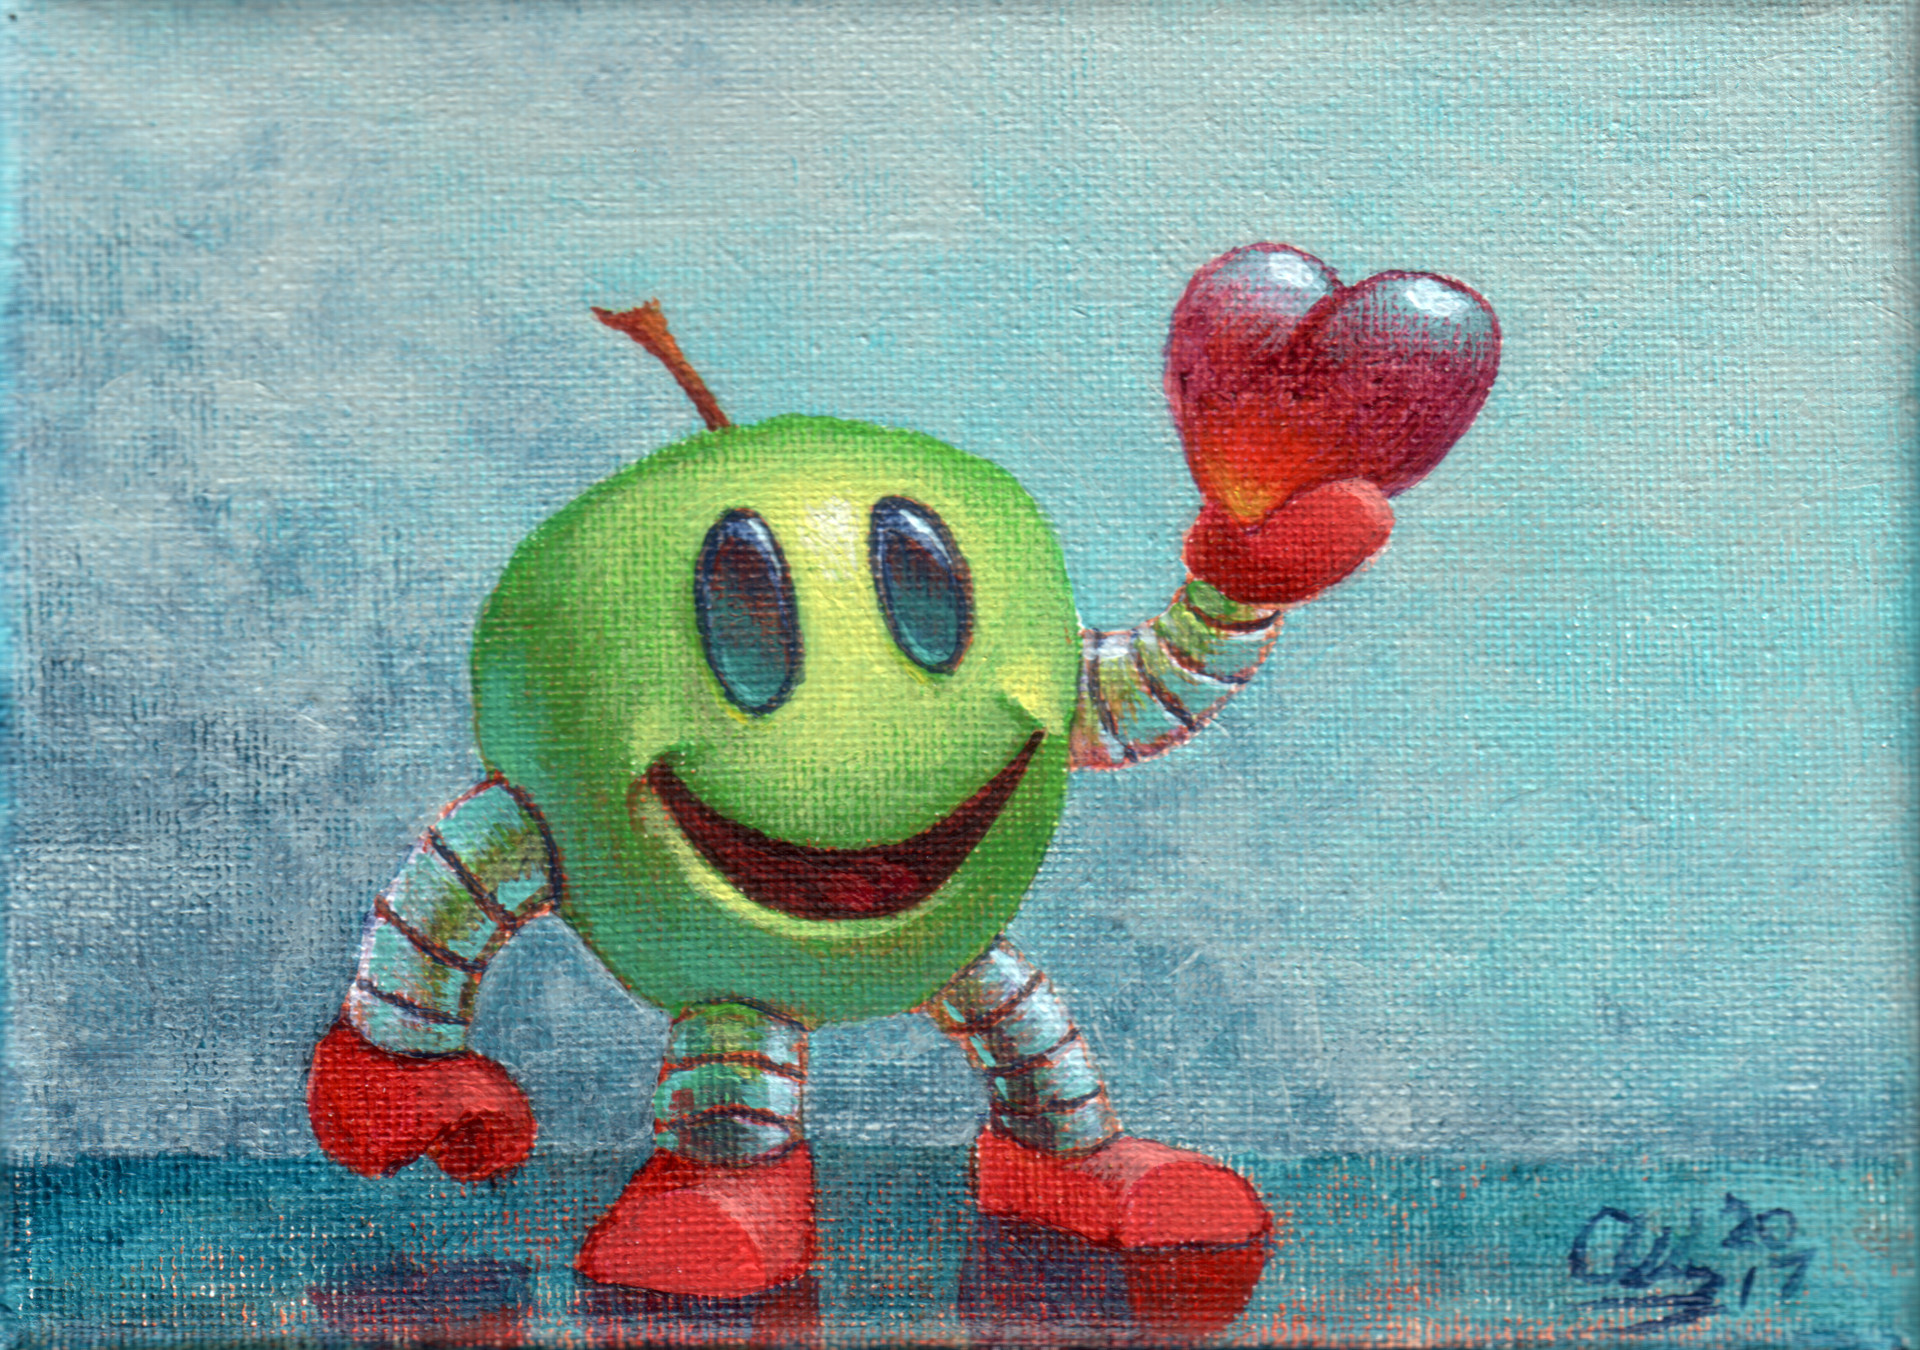 Anthony rosbottom robot apple with sweet heart